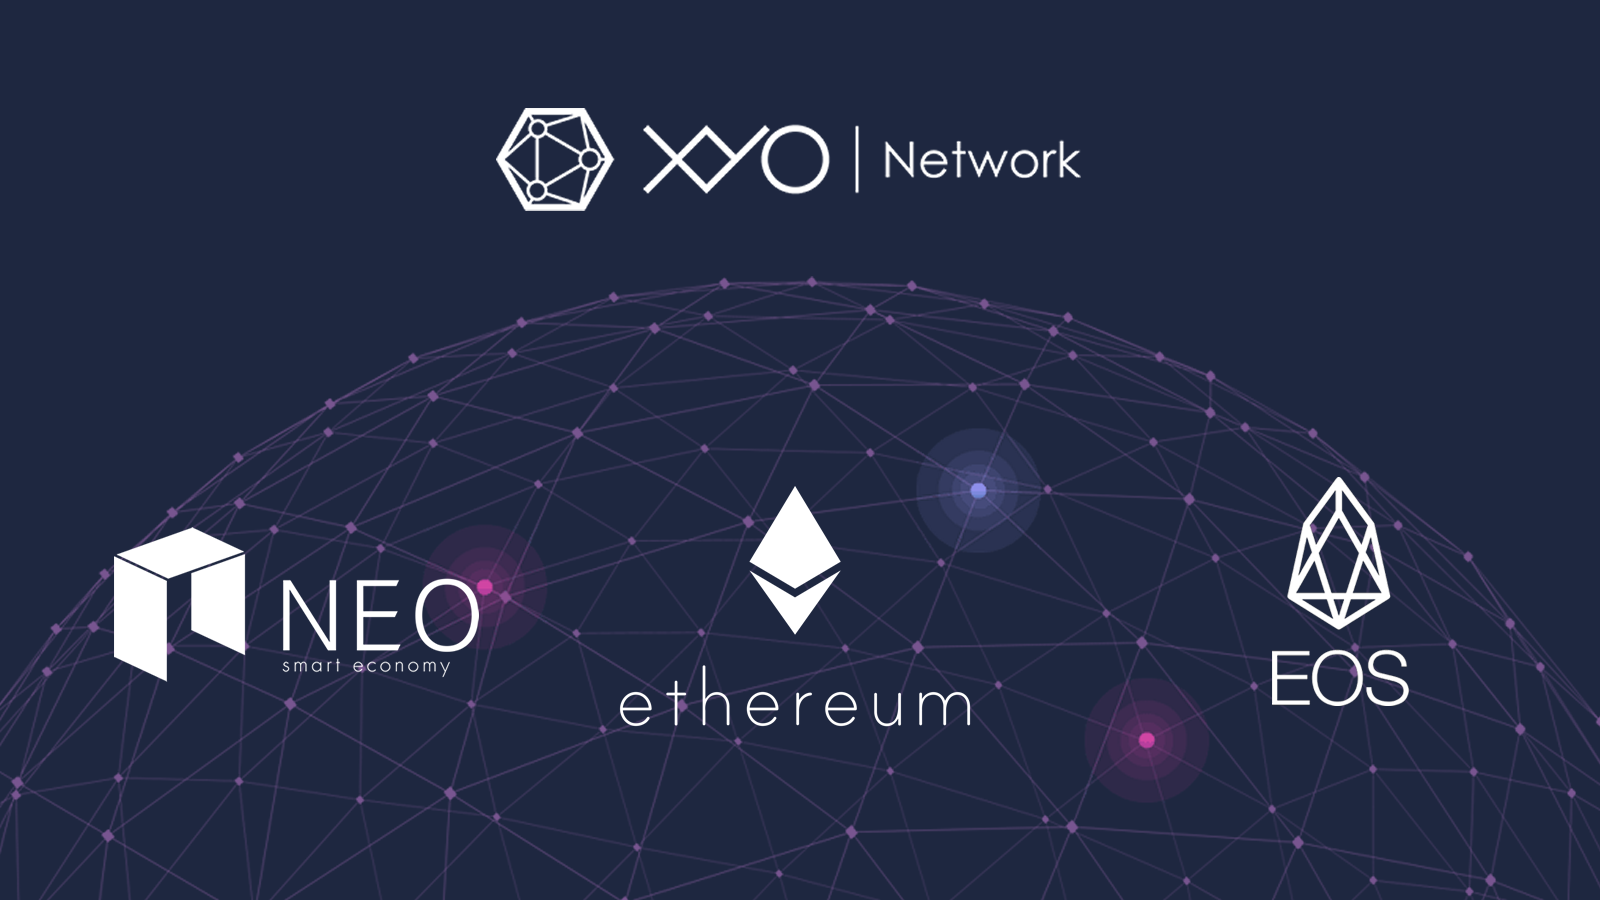 Integration with the xyo network ethereum vs eos vs neo biocorpaavc Choice Image